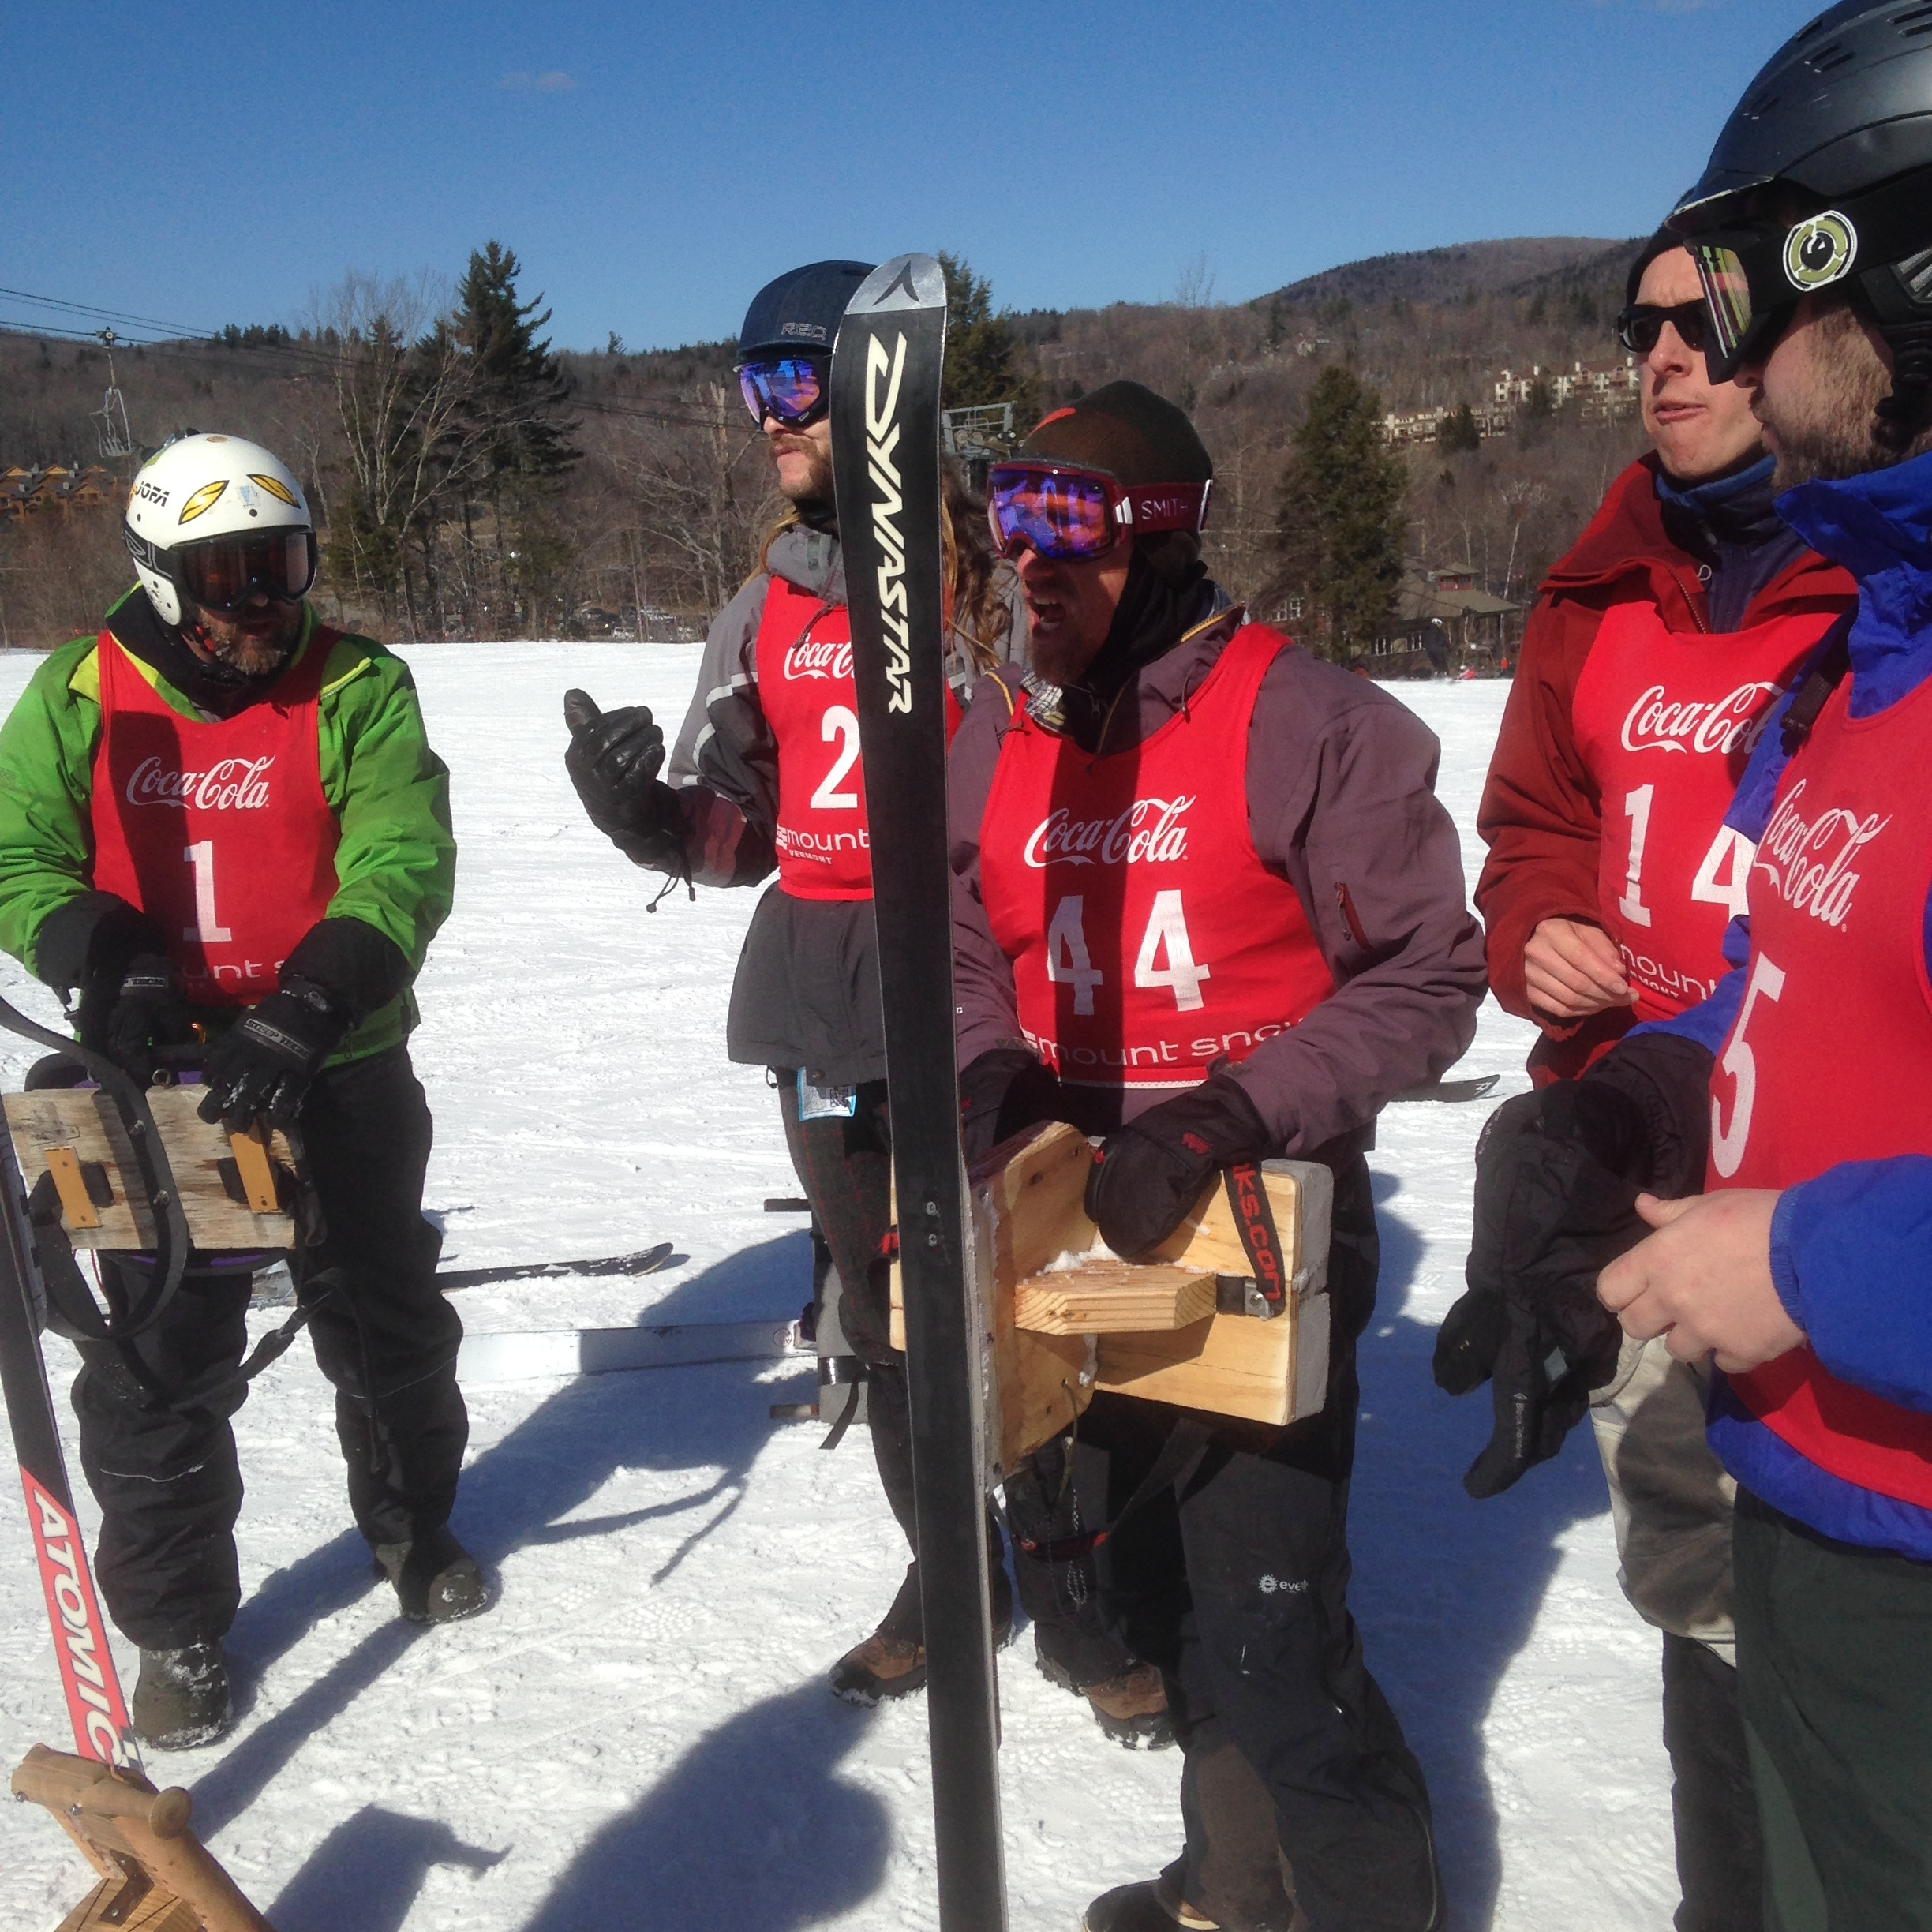 The Mt. Philo Inn sponsors the Mt. Philo jack jump team (right) in the yearly world championship at Mt. Snow in southern VT. March 2019: gold in Men's and Womens division. 2018: Men's gold, bronze, Women's silver, 2016: 2nd and 4th. 2015 Men's gold